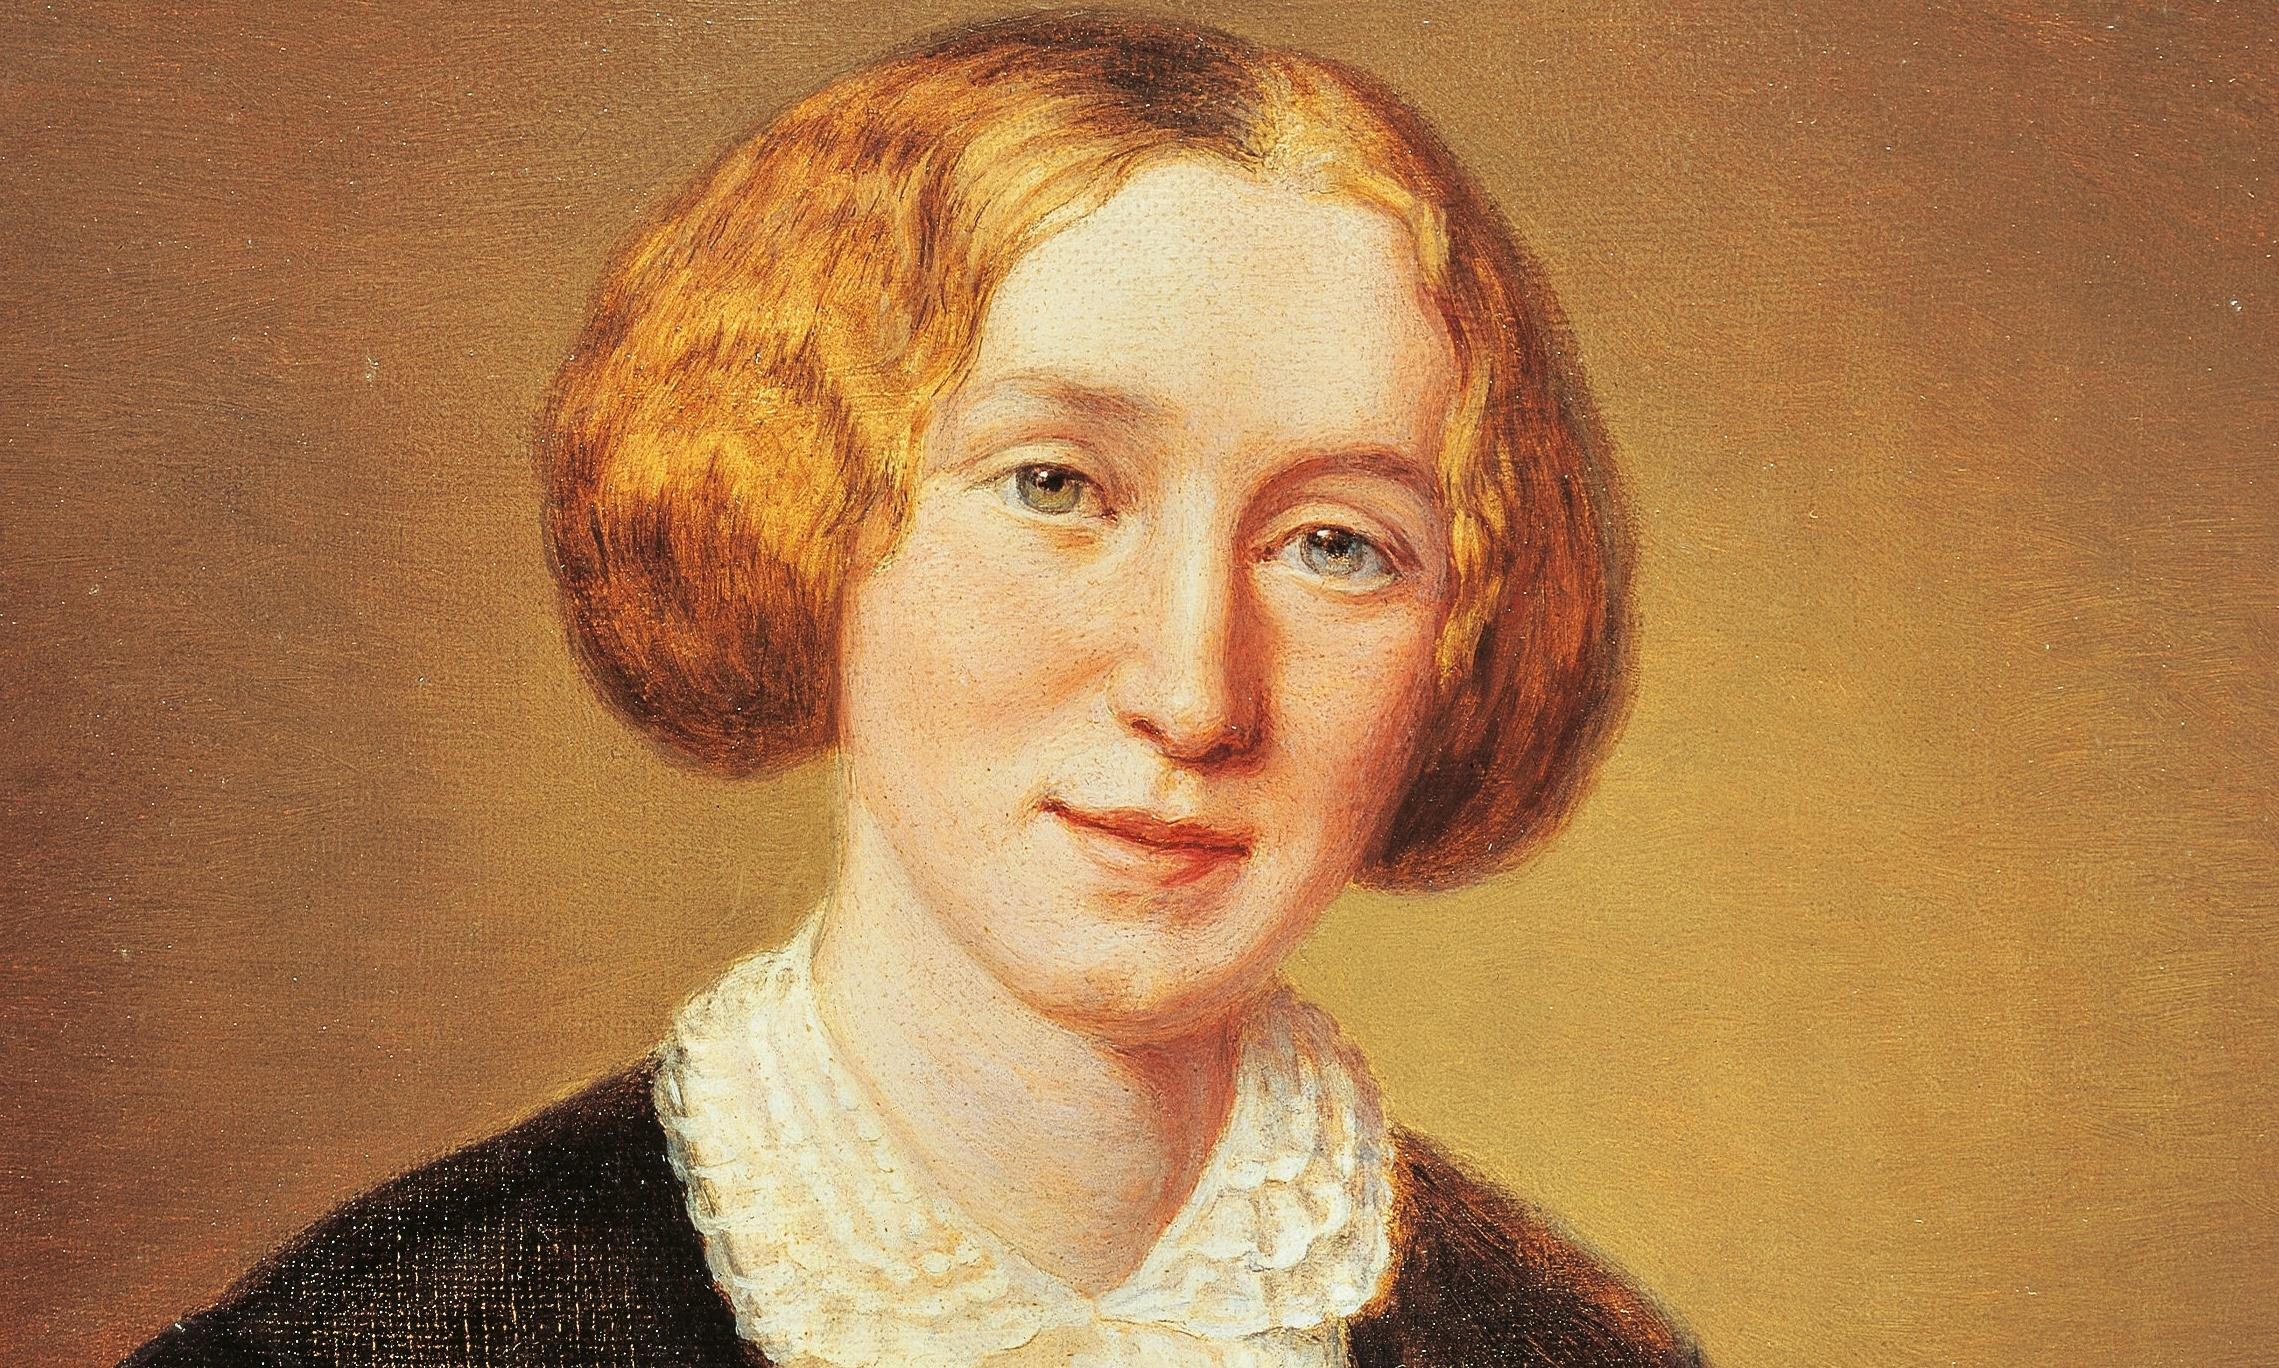 George Eliot translation of Spinoza sheds new light on her fiction